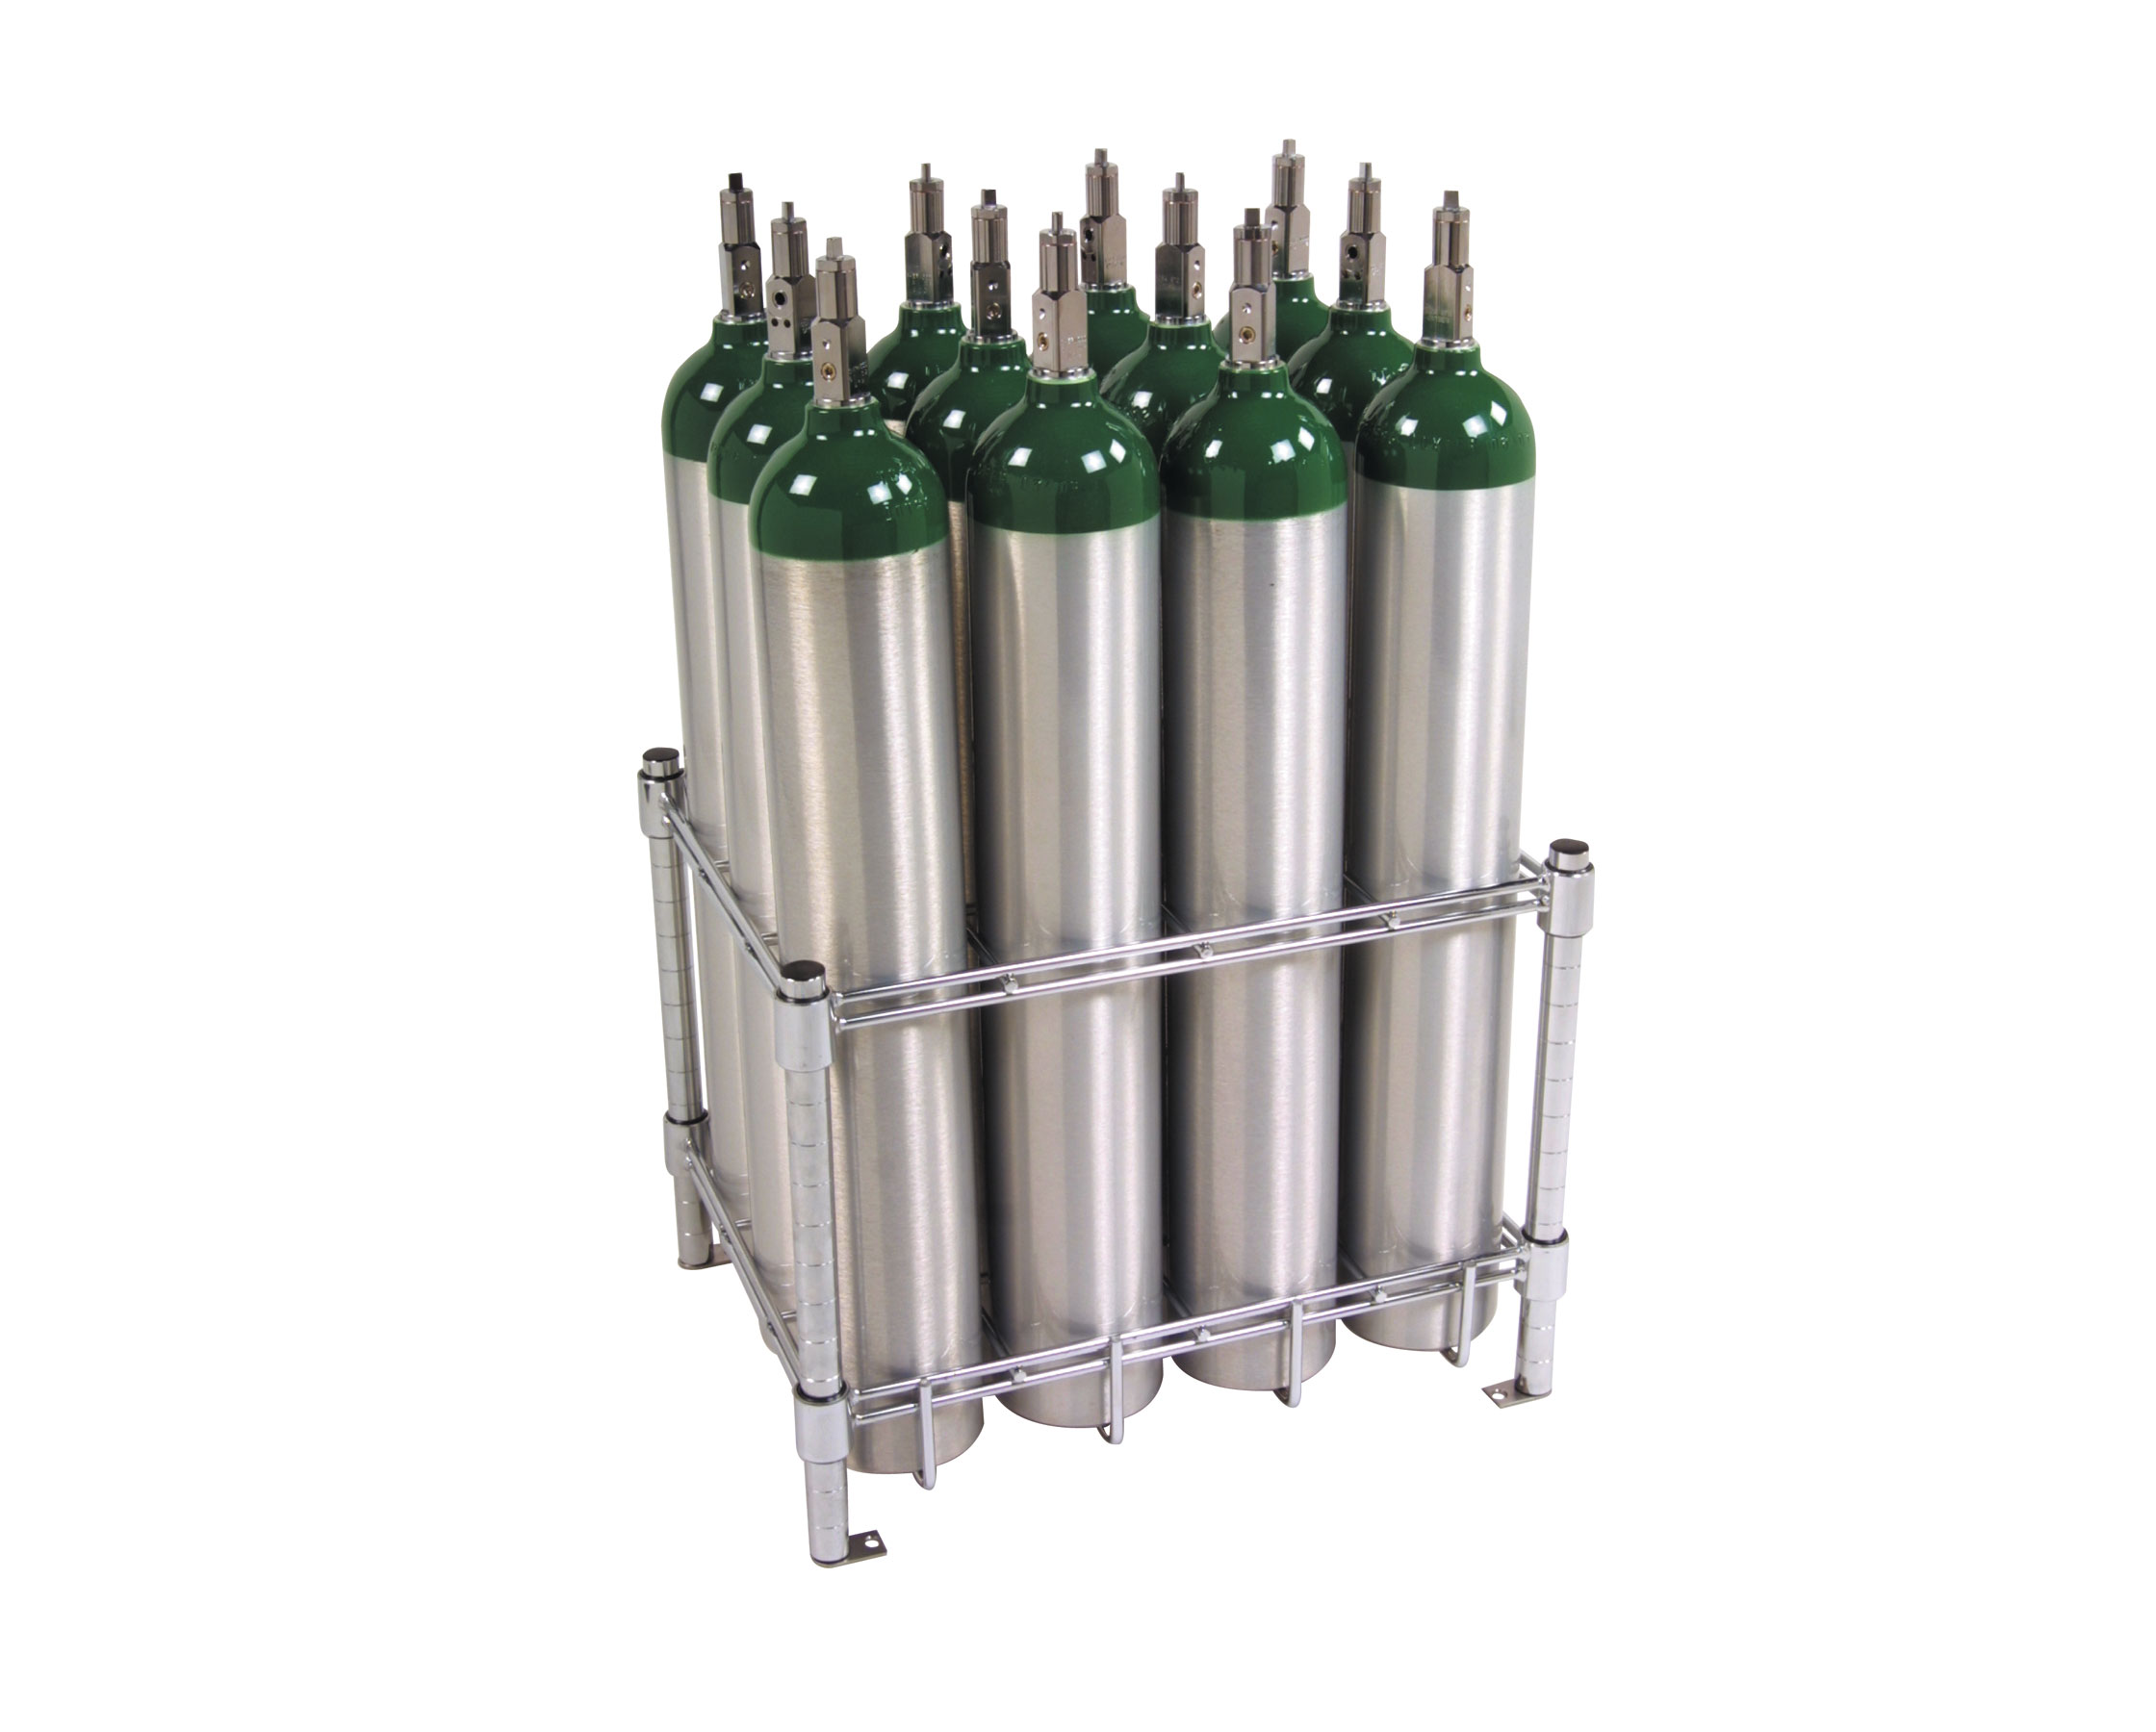 Everpure Claris Adjustable Water Softening Filter System T11968 furthermore Oxygen Tank Size D furthermore Oxygen Cylinder Carts 21464 moreover Argon Gas Cylinder Size Chart further Oxygen Supply Sources. on medical oxygen tanks duration